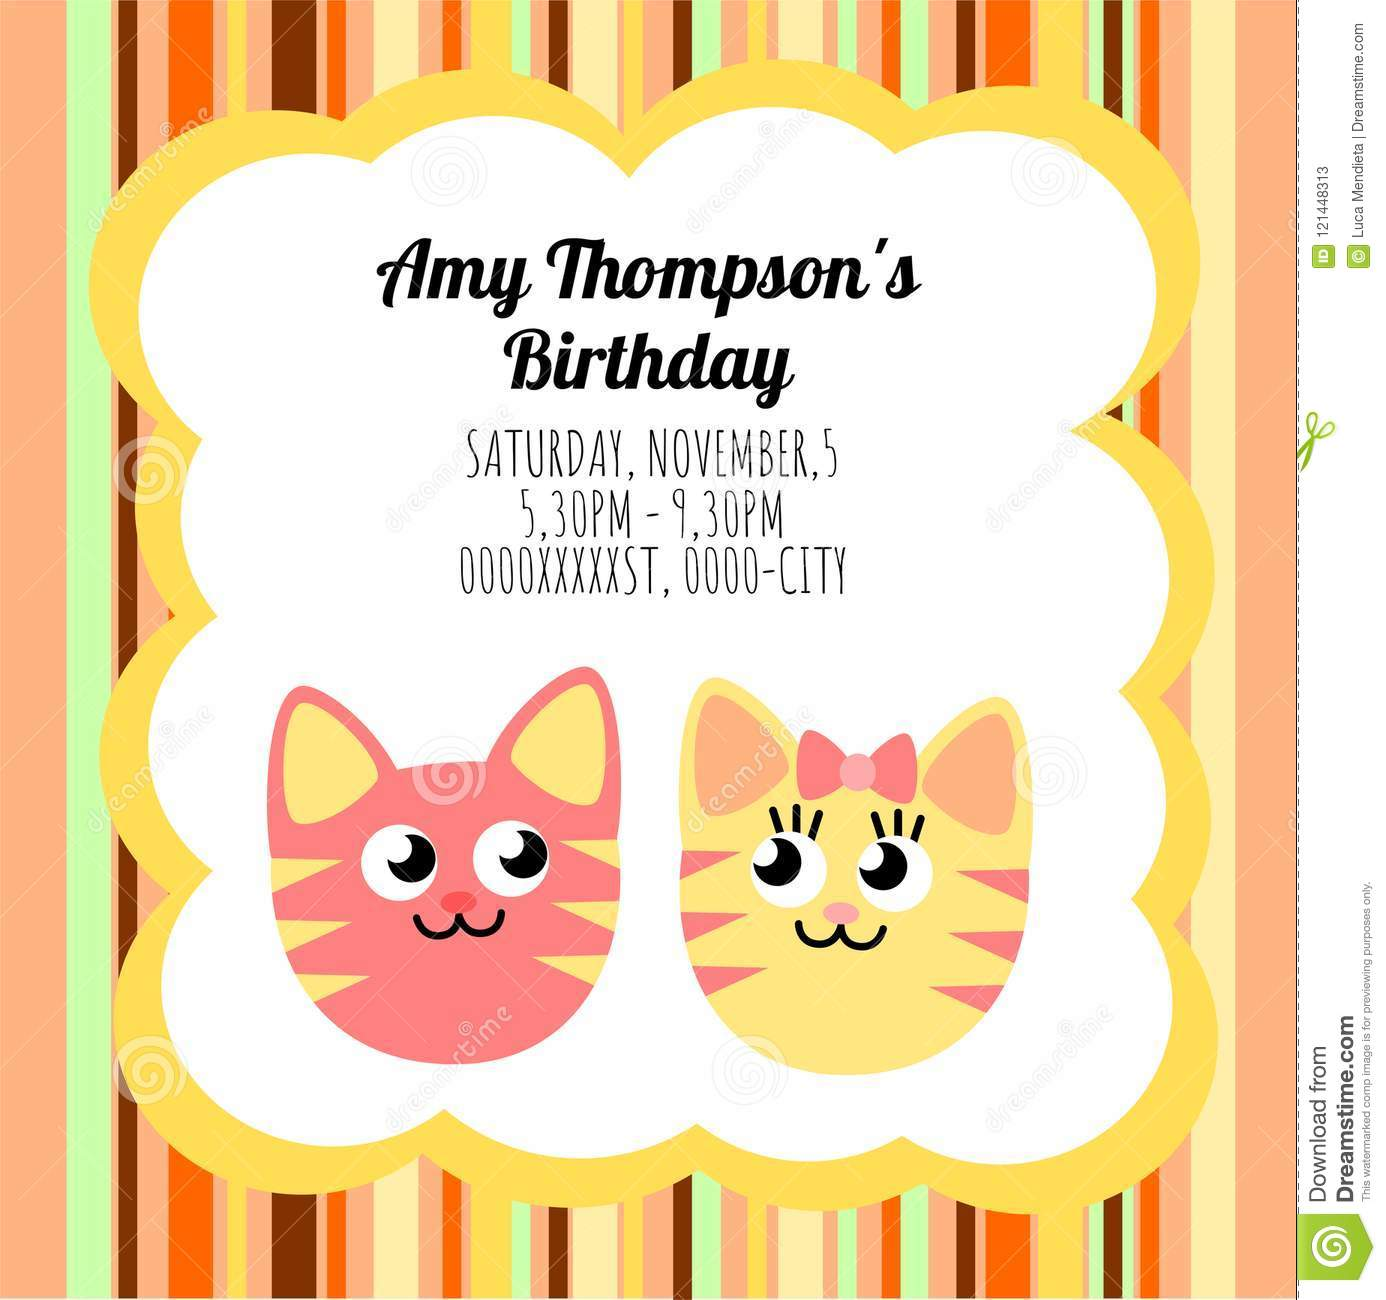 Cute Card Template Of A Birthday Invitation With Two Cats